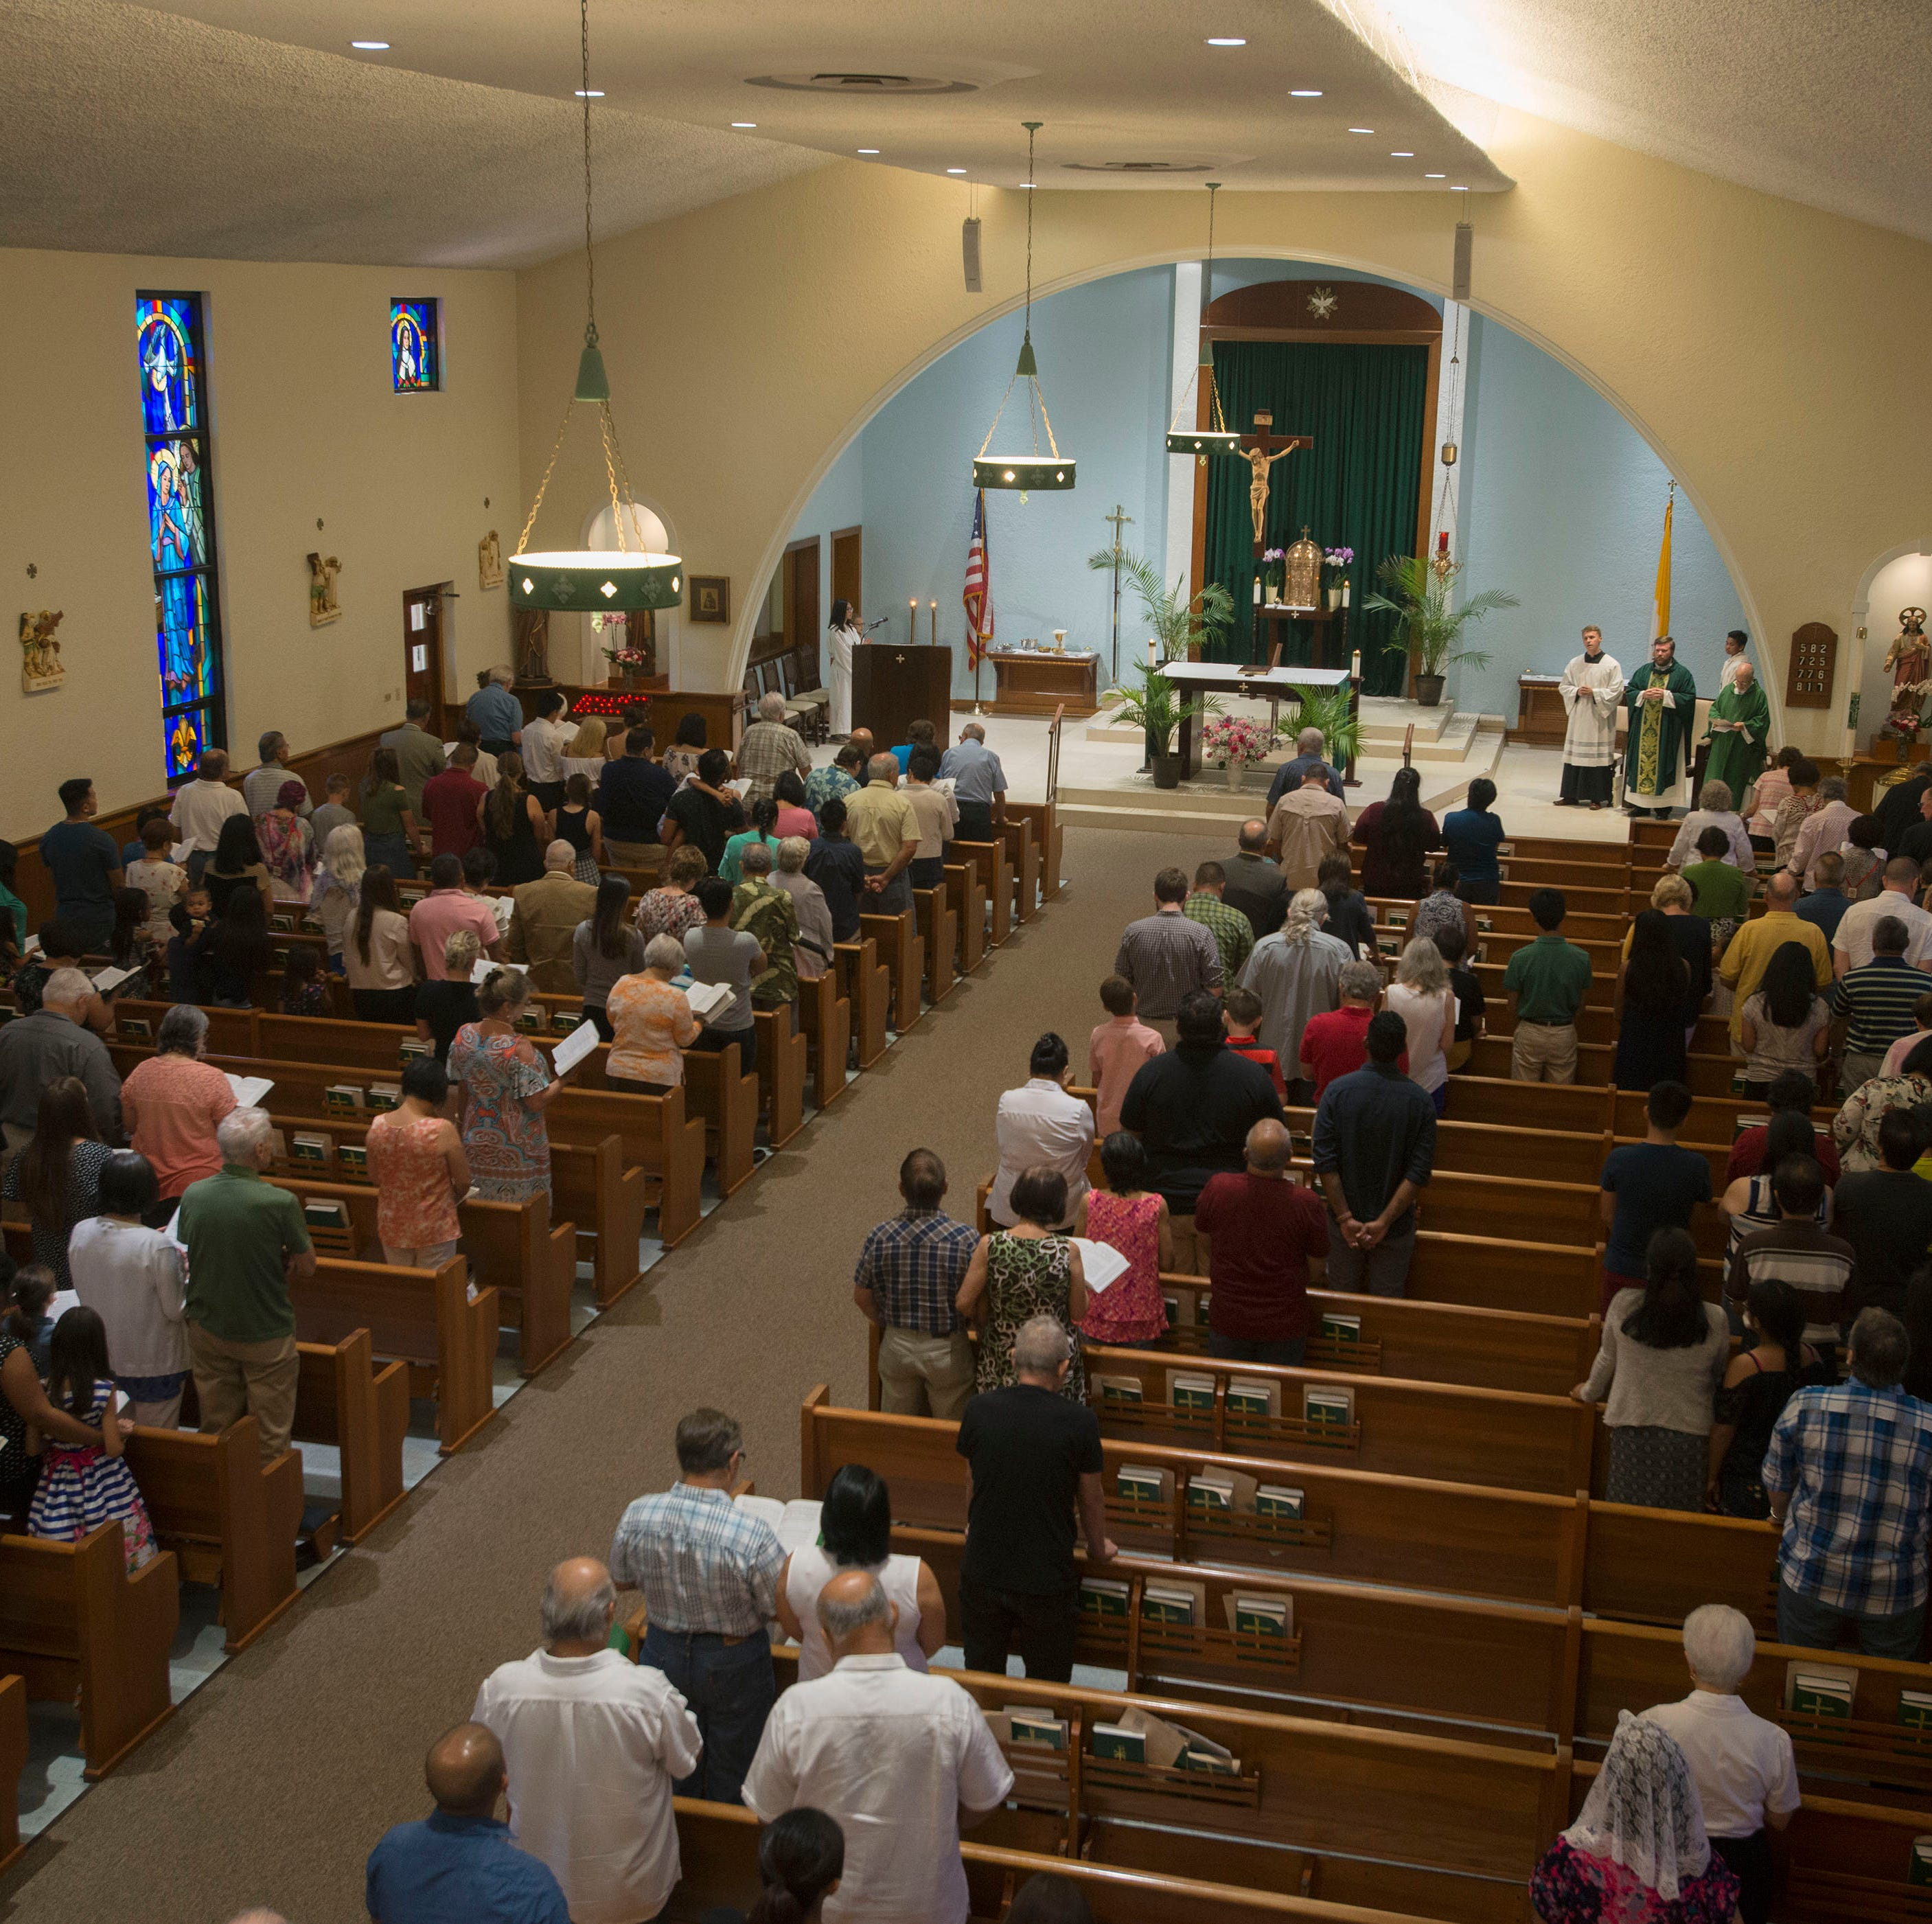 'My heart is here': Pensacola's Little Flower Catholic Church blooms in Myrtle Grove